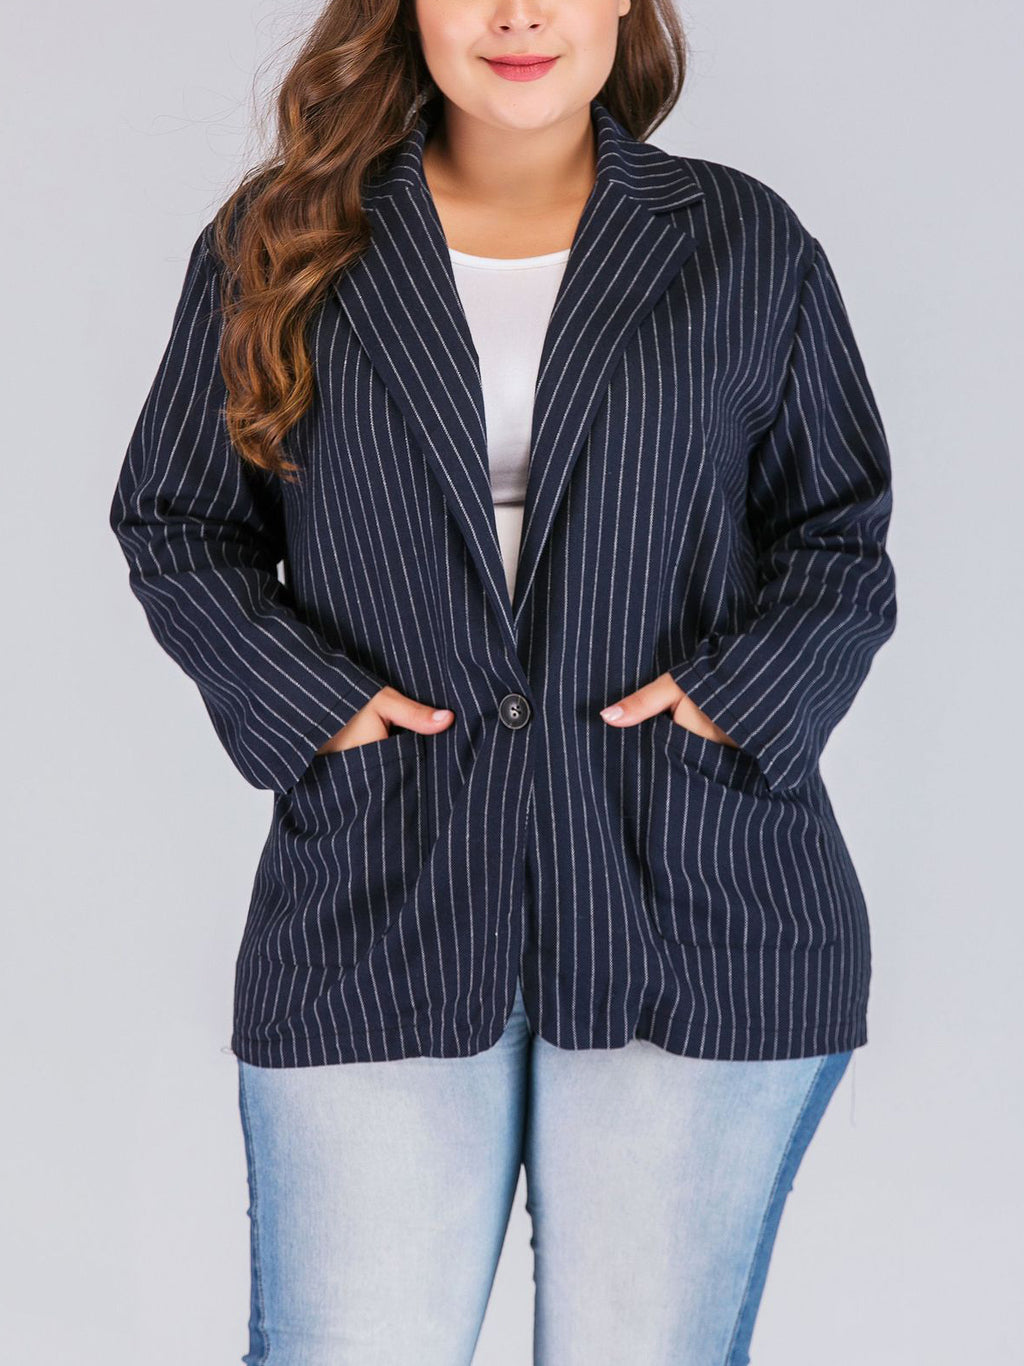 Large Size Fashion Women's Striped Long Sleeve Blazer